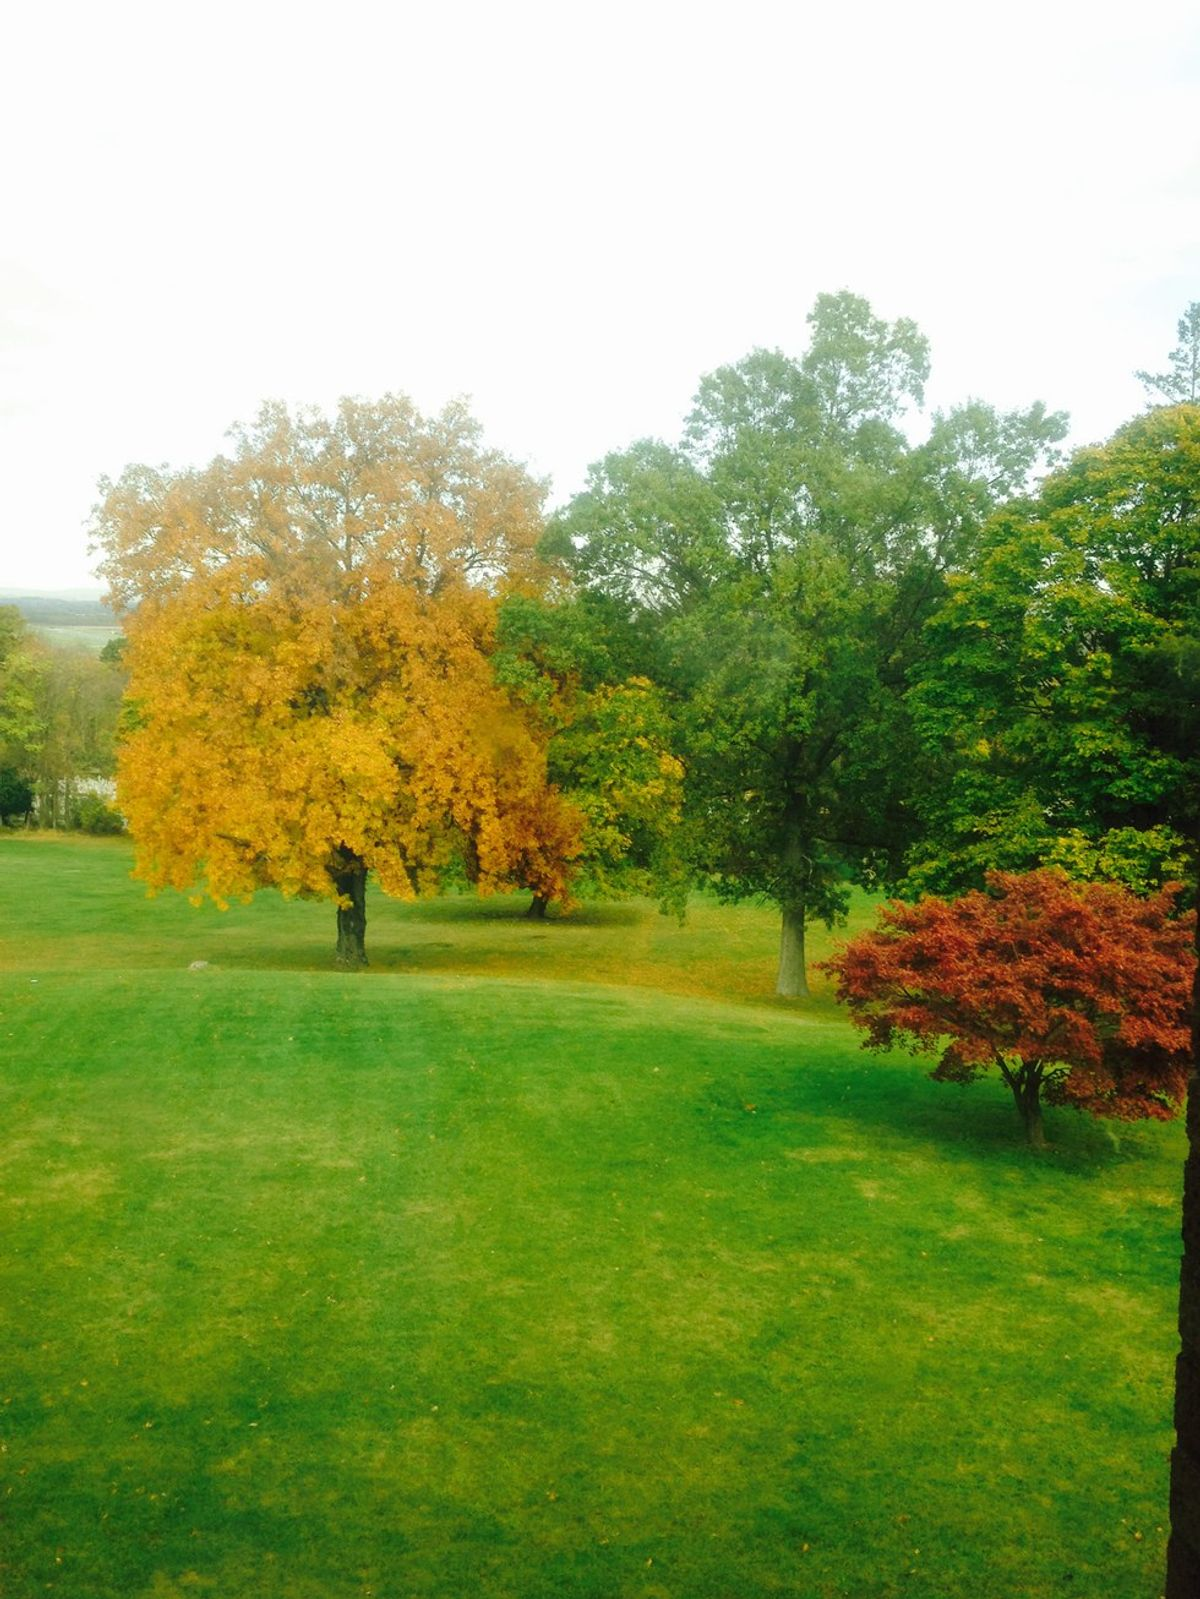 12 Reasons To Be Happy About The Fall And Winter Seasons